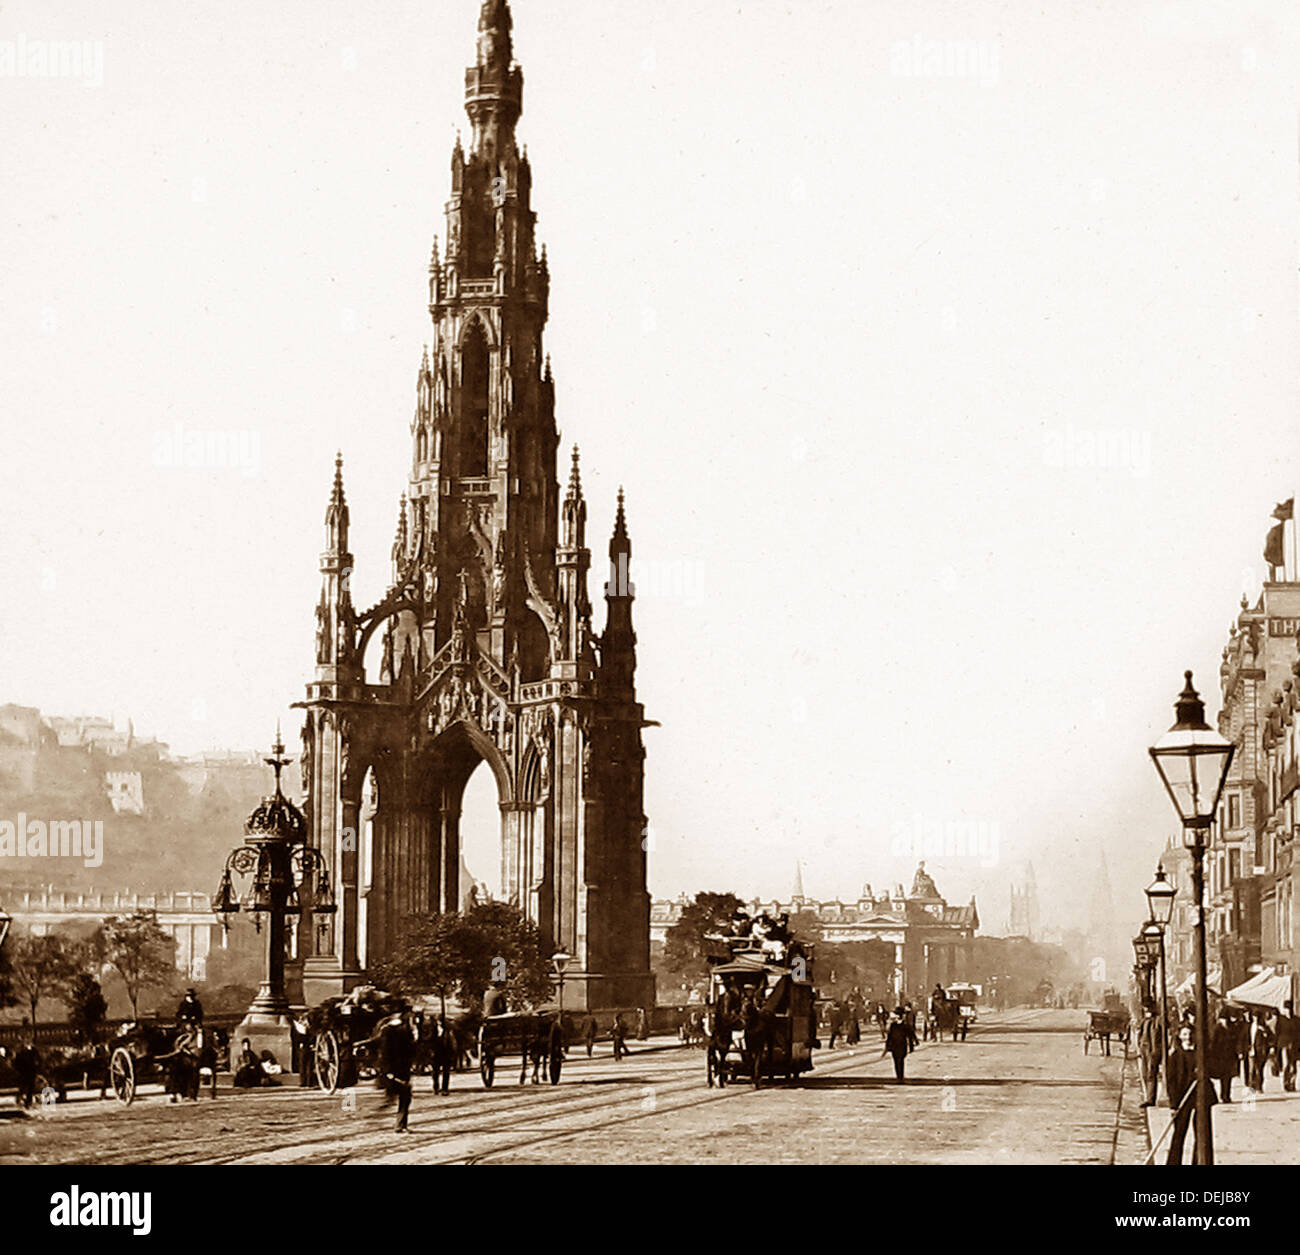 Edinburgh Sir Walter Scott Monument Princes Street Victorian period - Stock Image